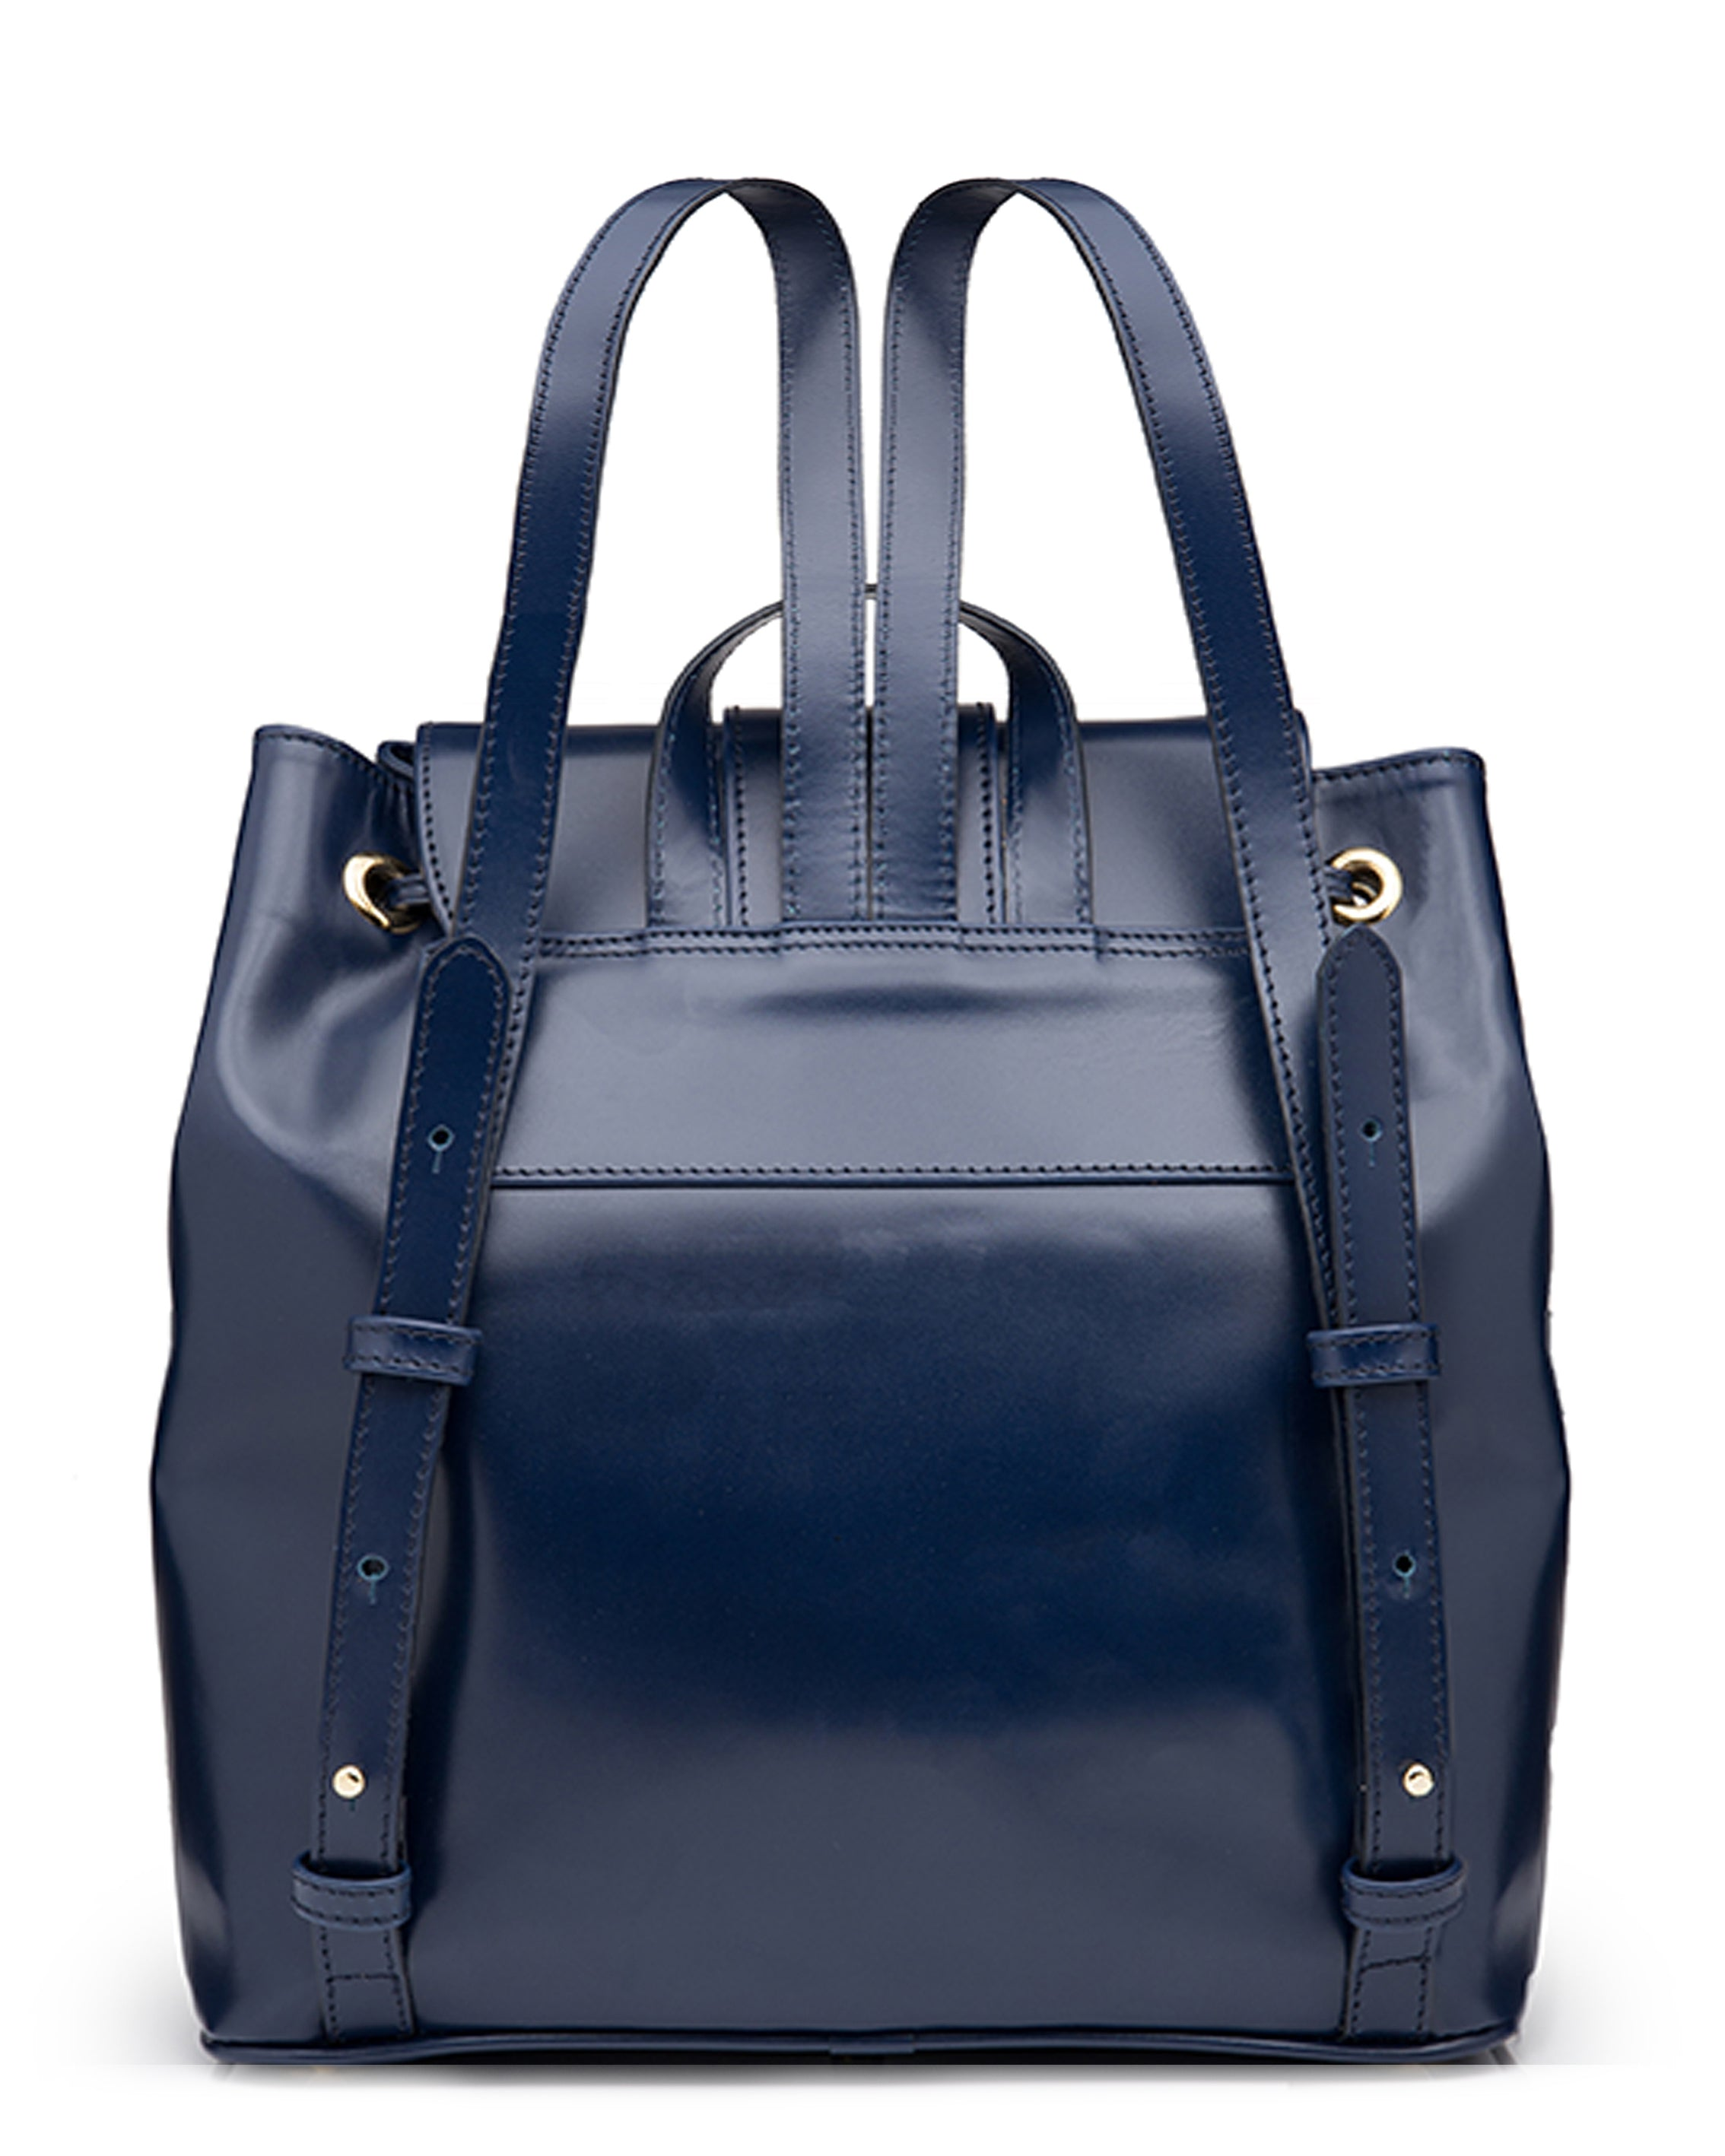 MANJERICA ESTE BLUE MOON Backpack in Leather